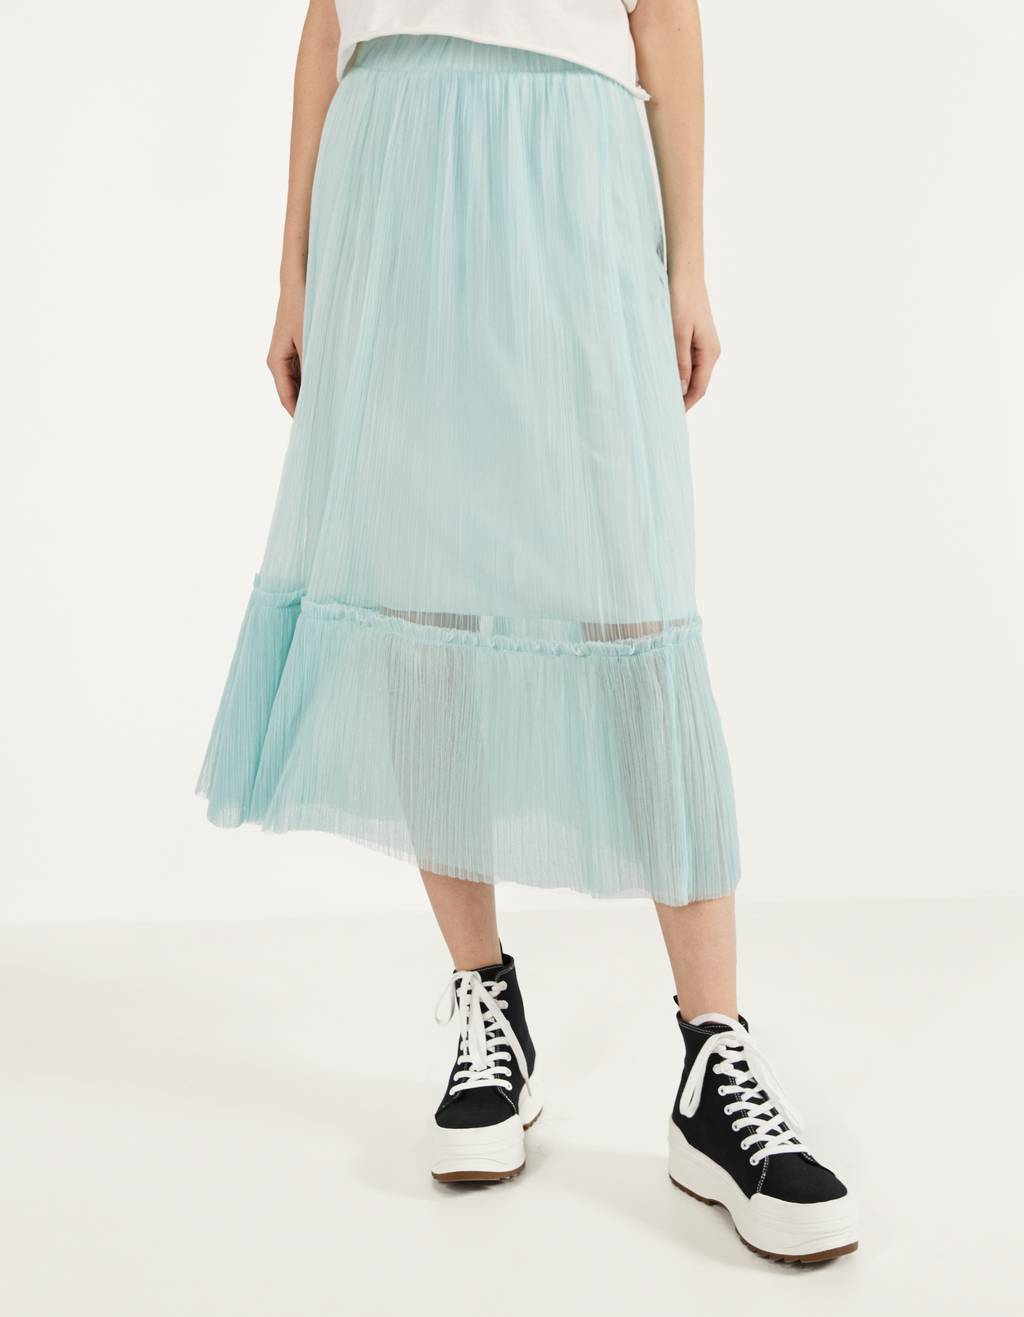 Gonna midi in tulle